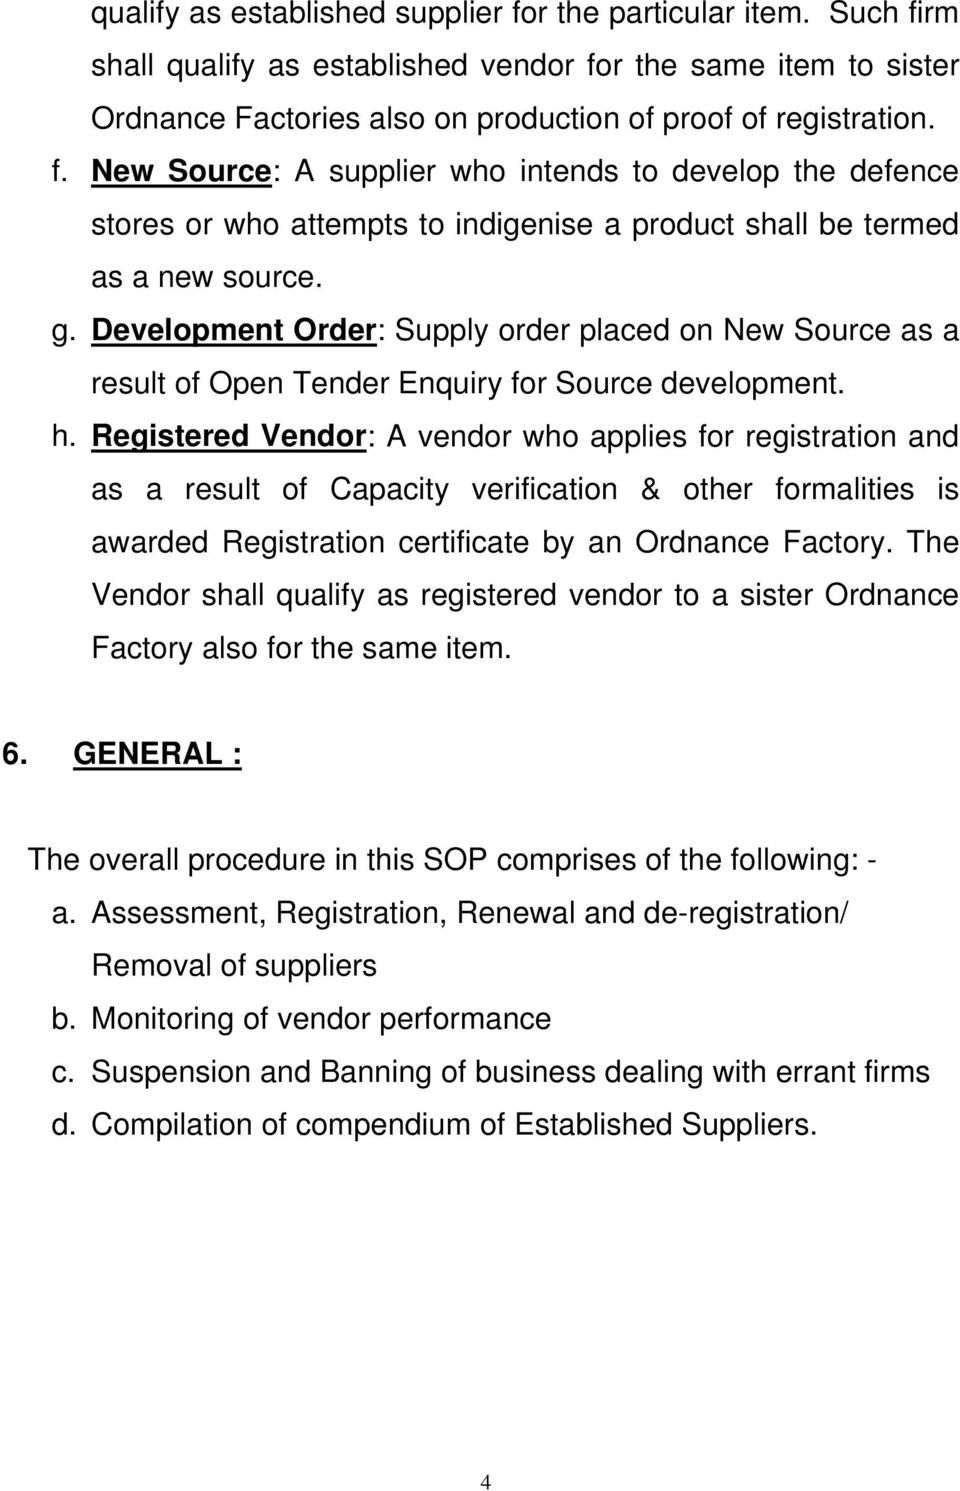 Registered Vendor: A vendor who applies for registration and as a result of Capacity verification & other formalities is awarded Registration certificate by an Ordnance Factory.